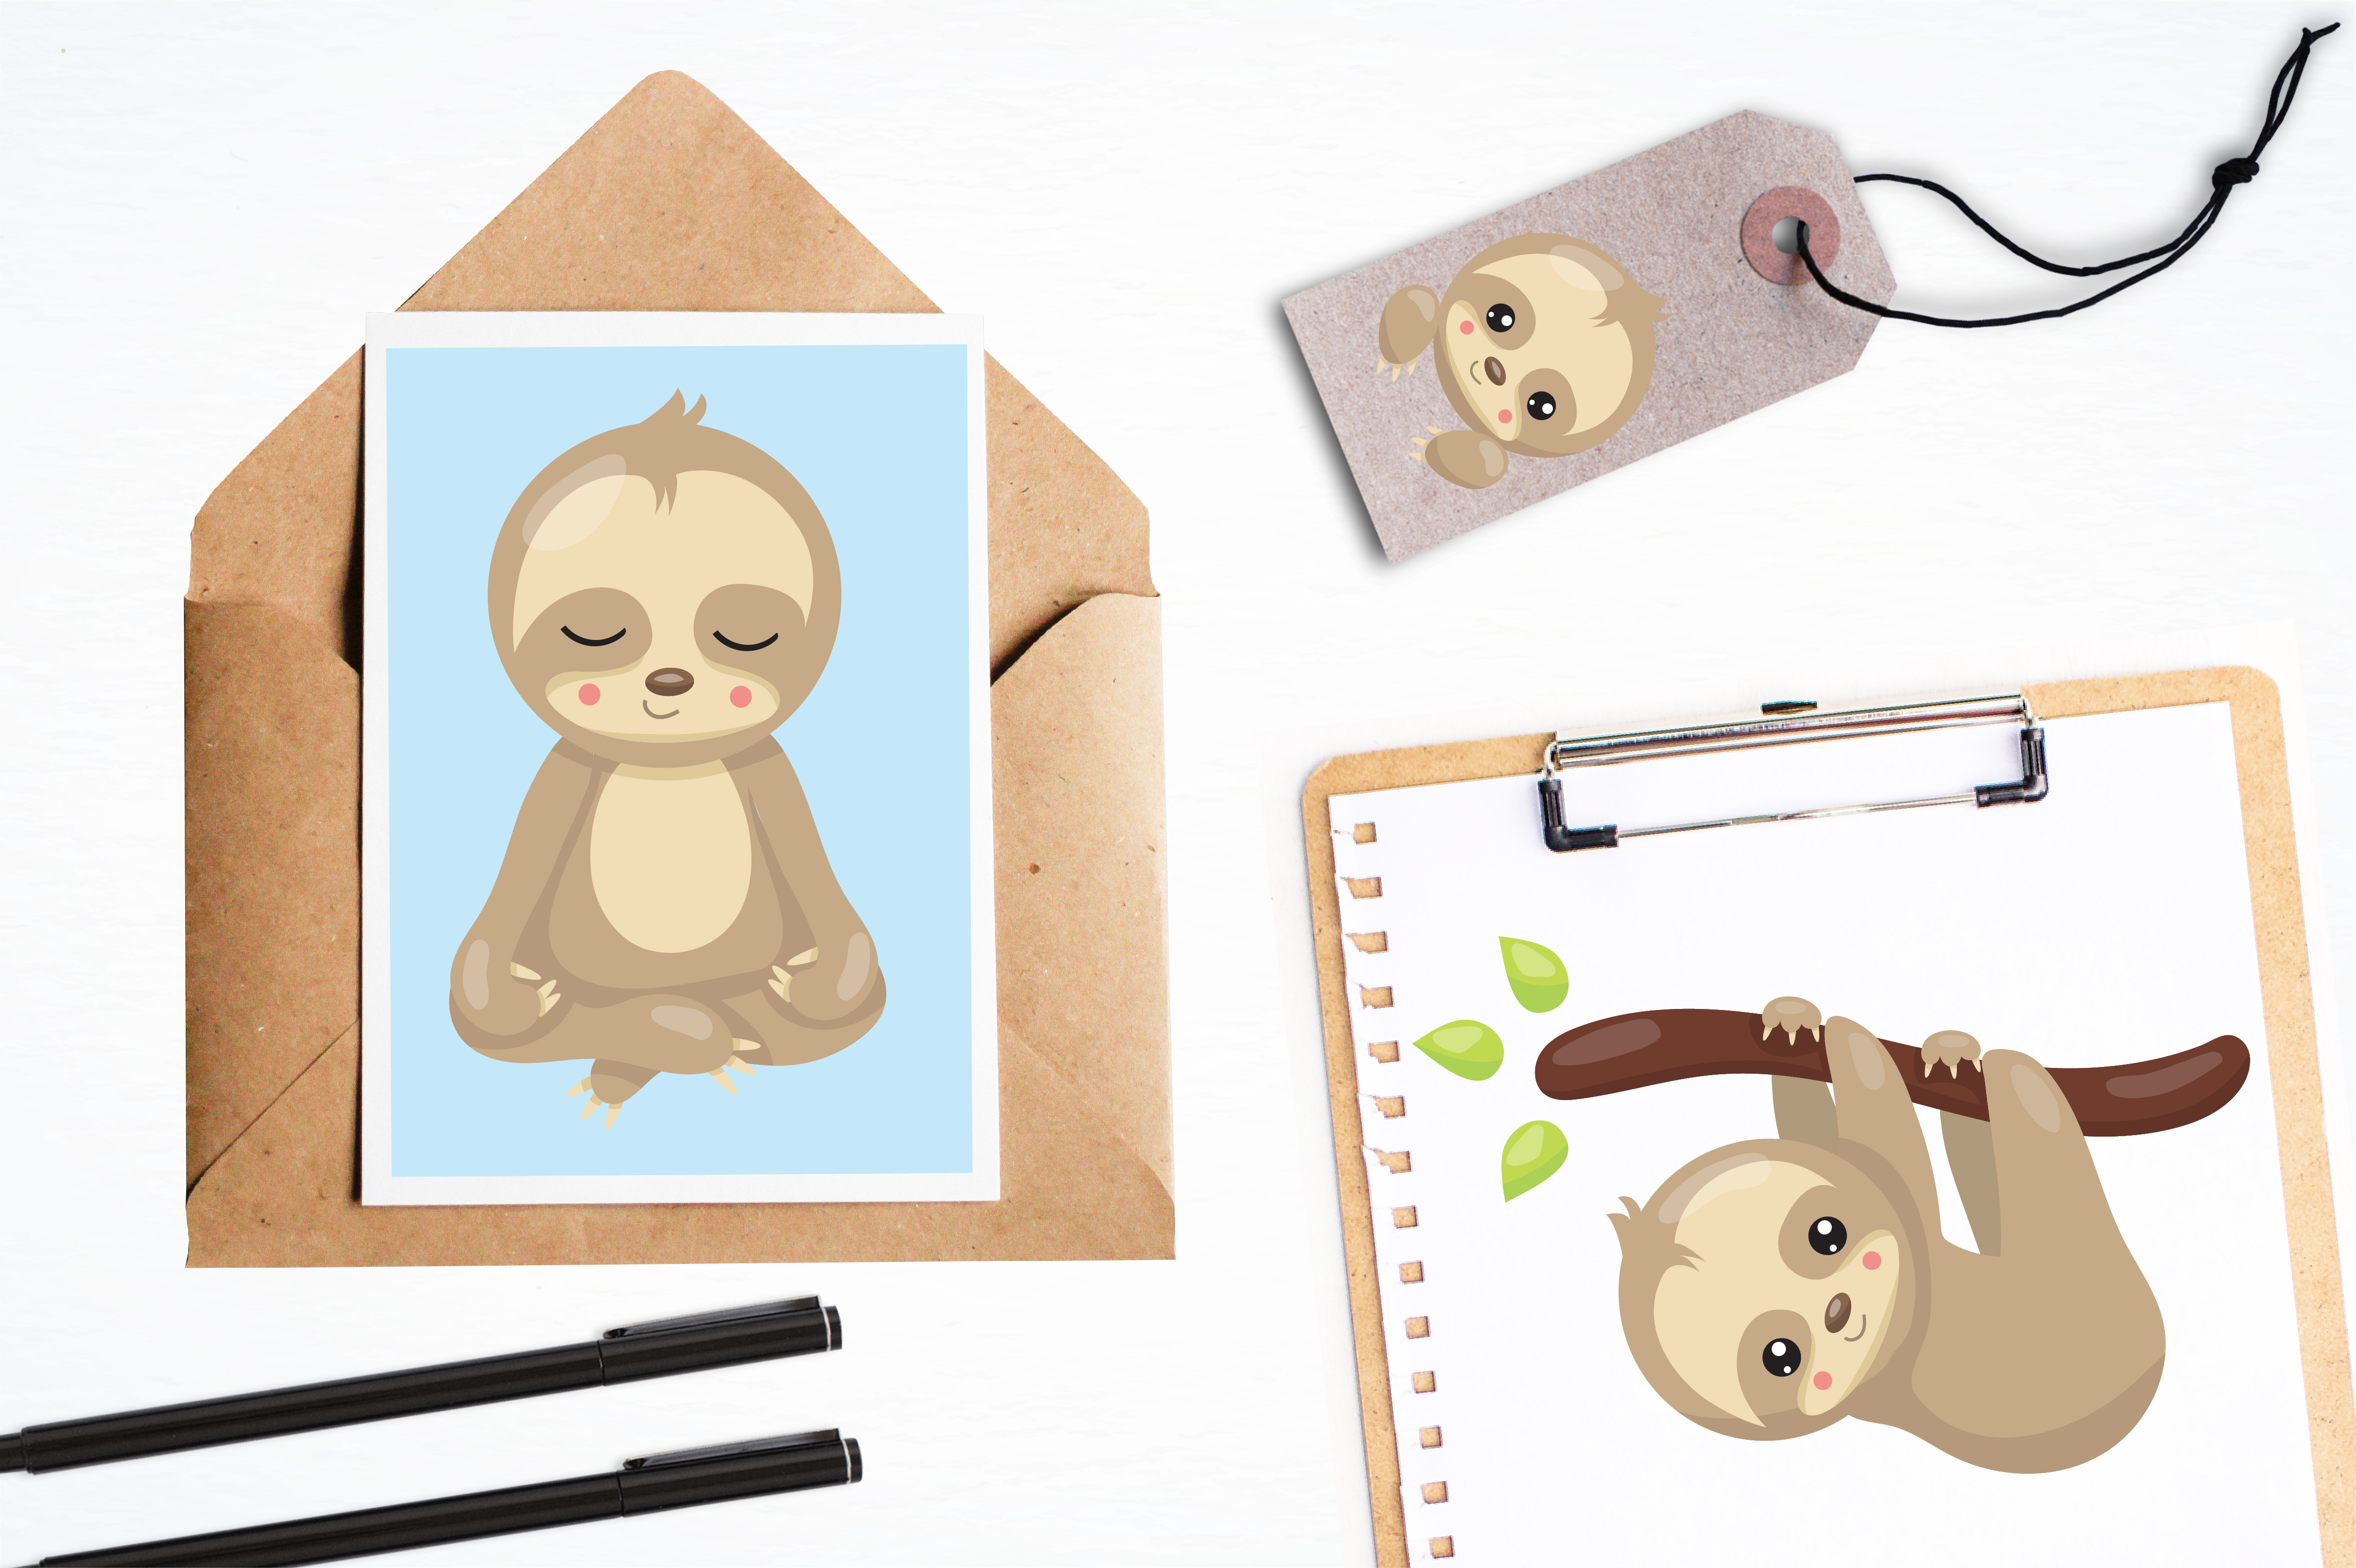 Sleepy sloth graphics and illustrations example image 4